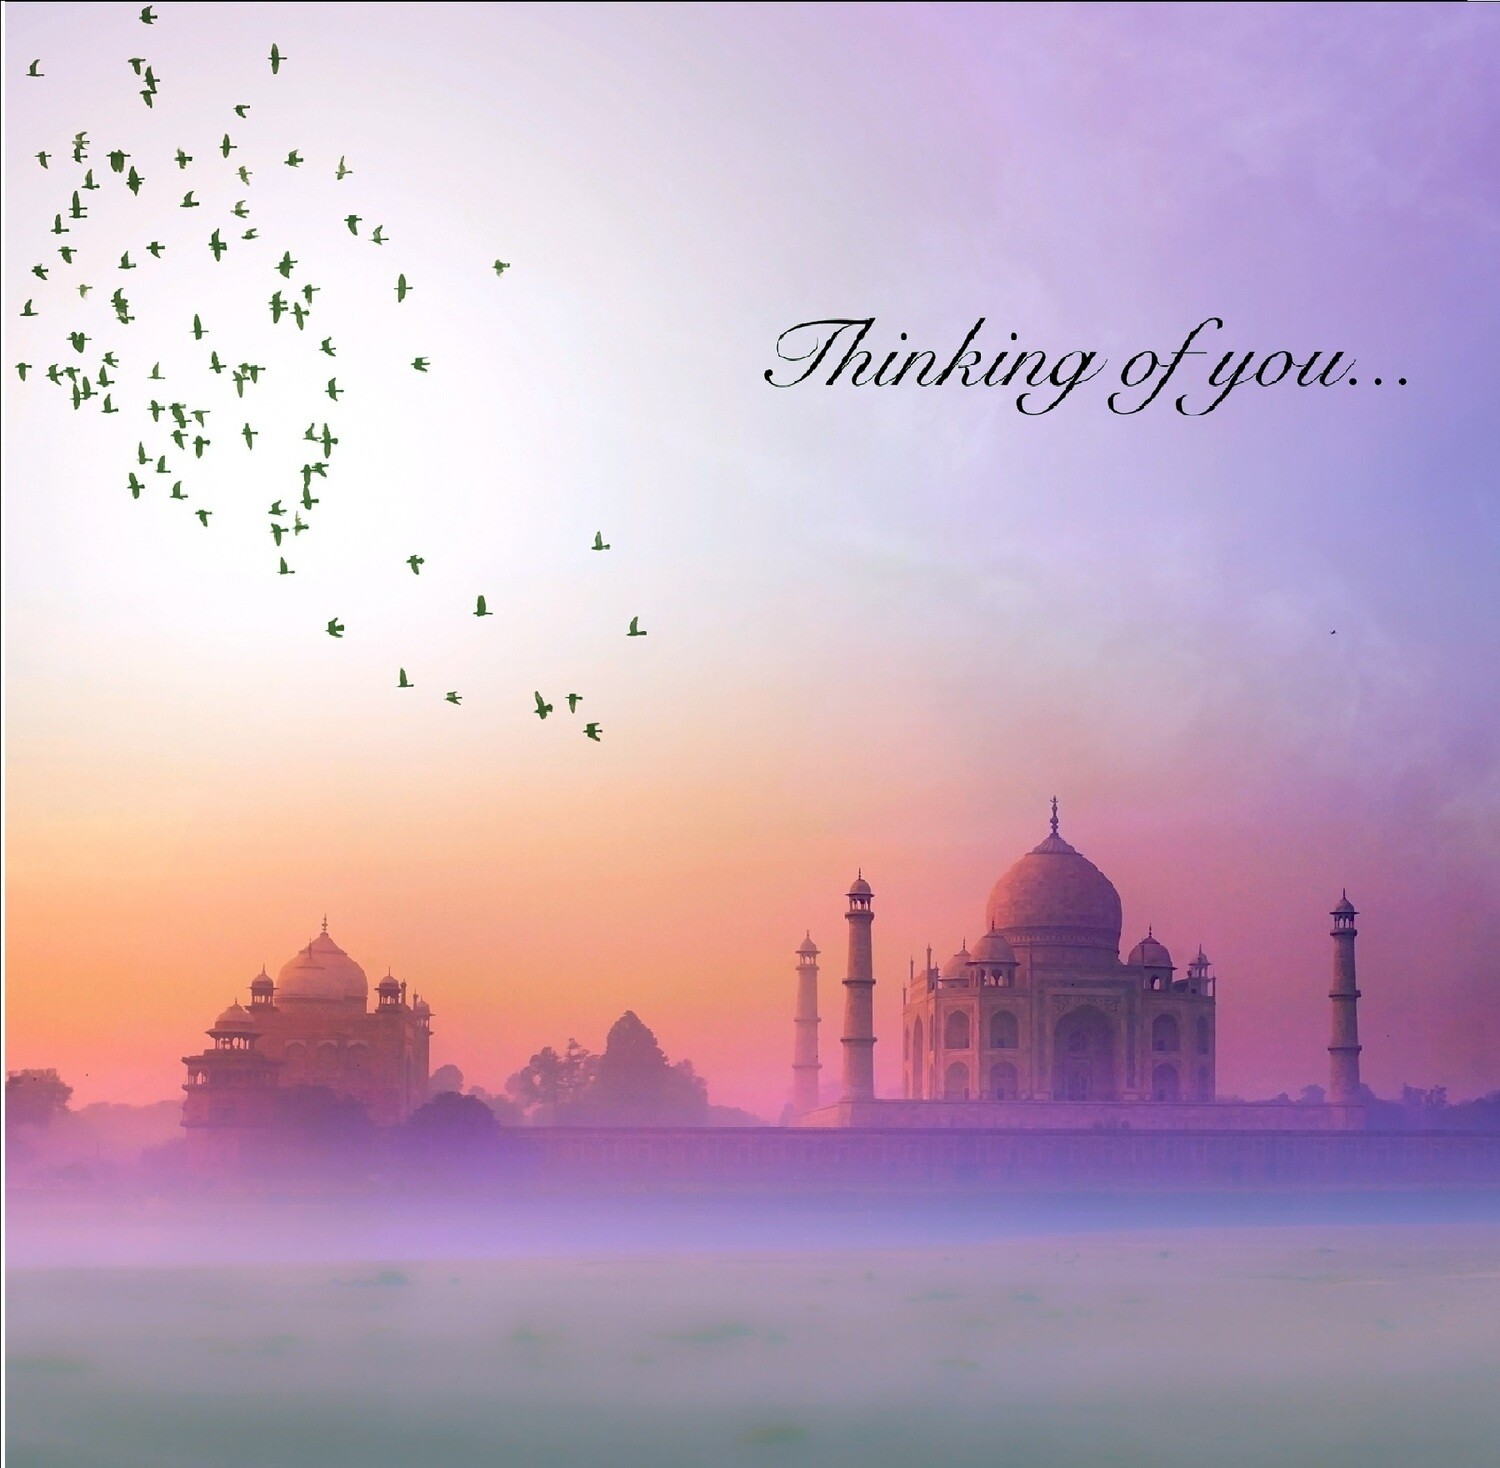 Thinking of you - Taj Mahal Greeting Card